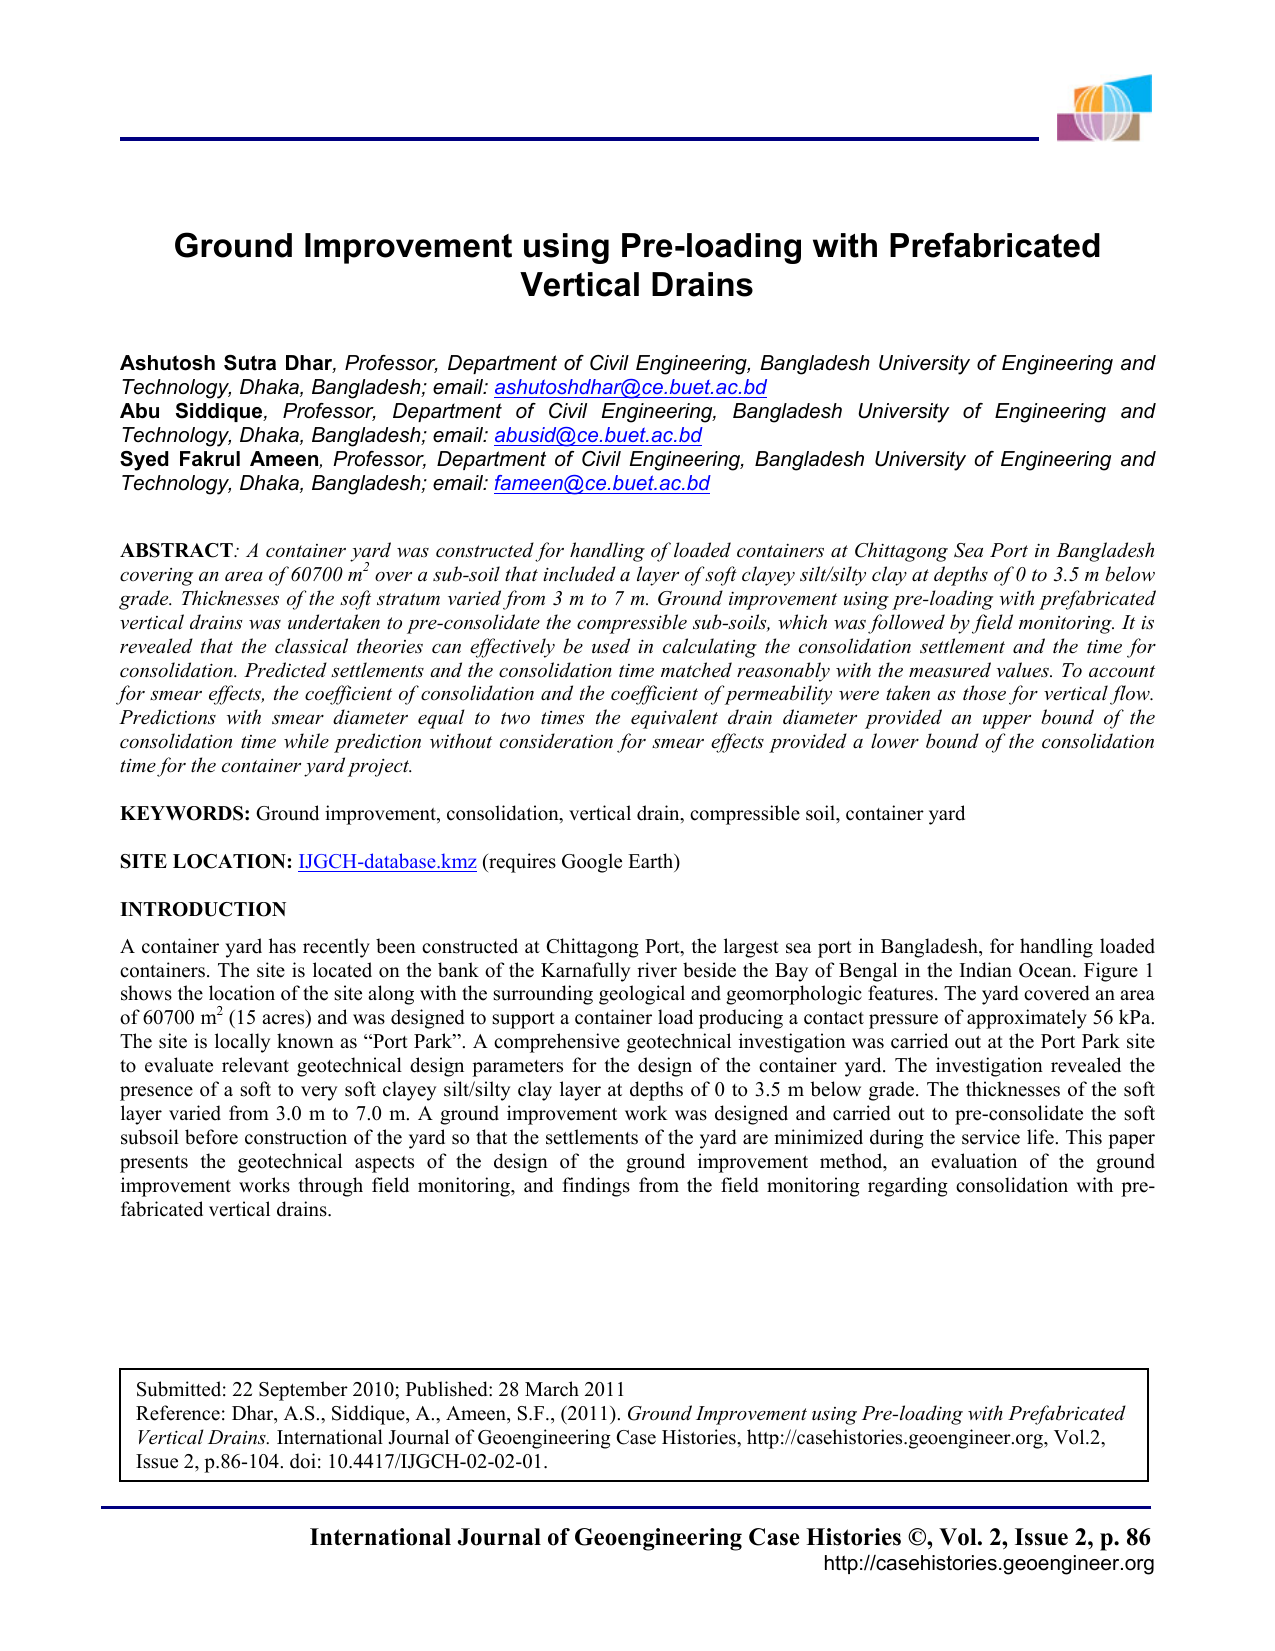 Ground Improvement using Pre-loading with Prefabricated Vertical